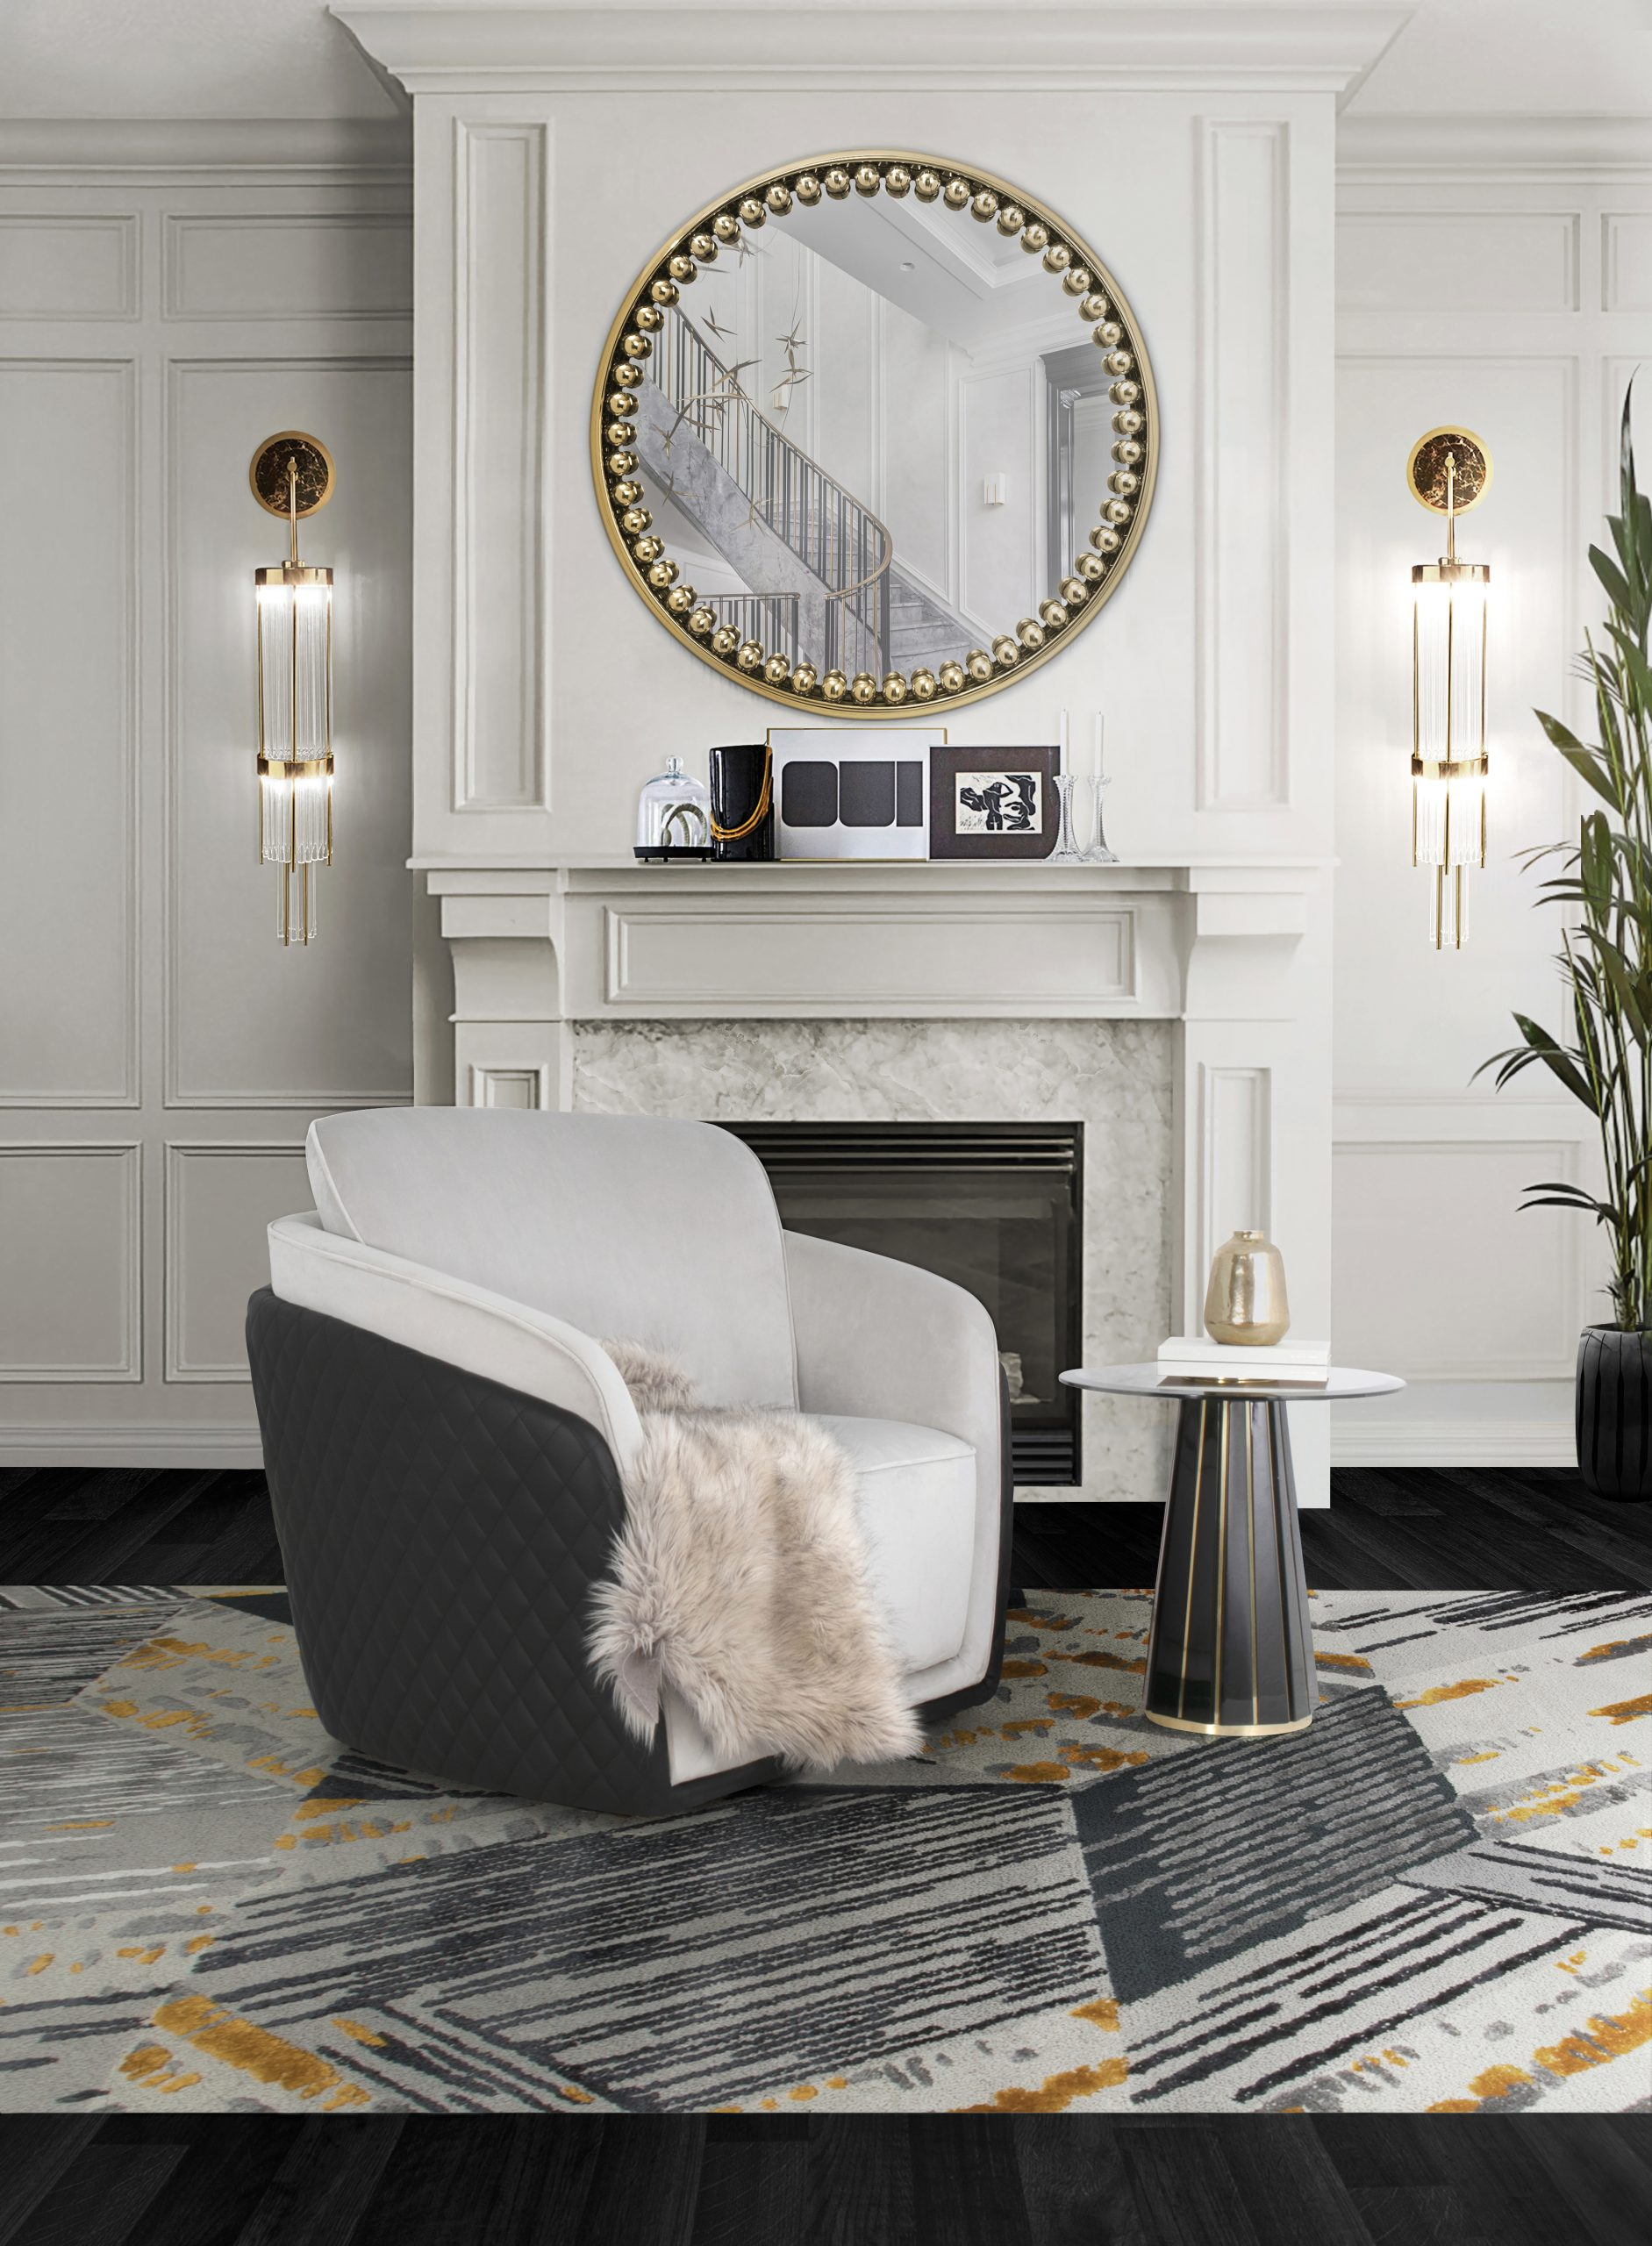 mirror designs mirror designs Mirror designs that will glamour your house orbis scaled